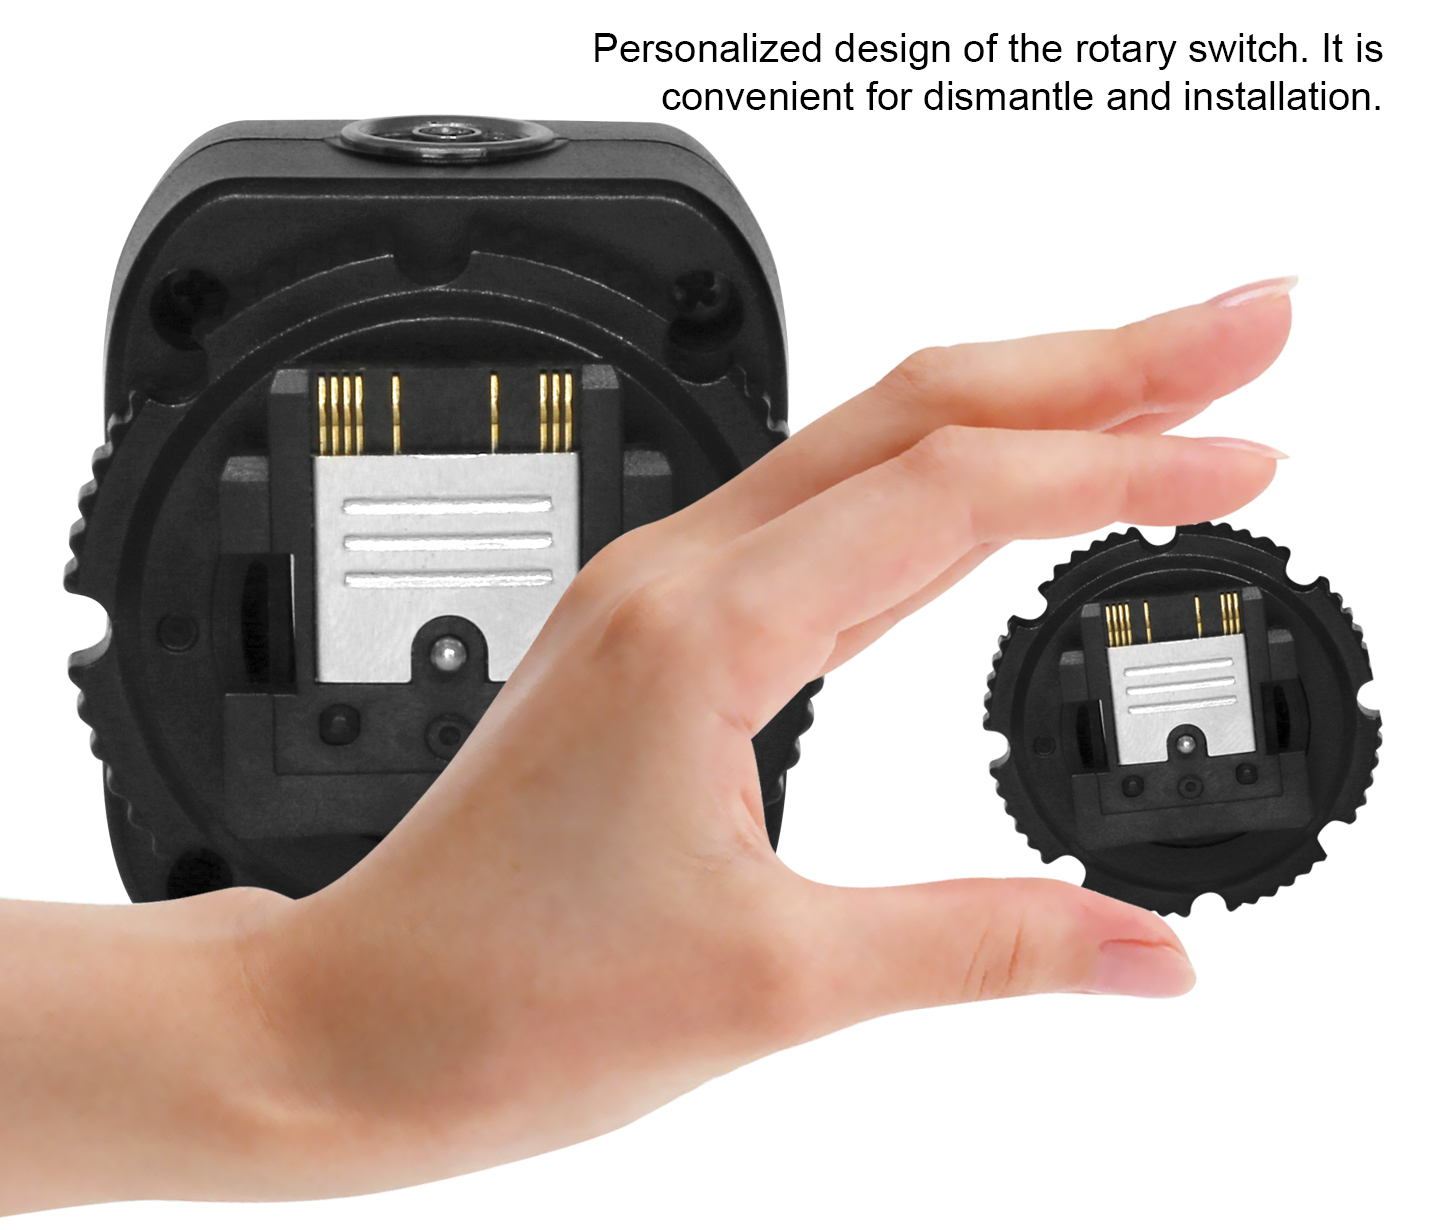 Personalized design of the rotary switch